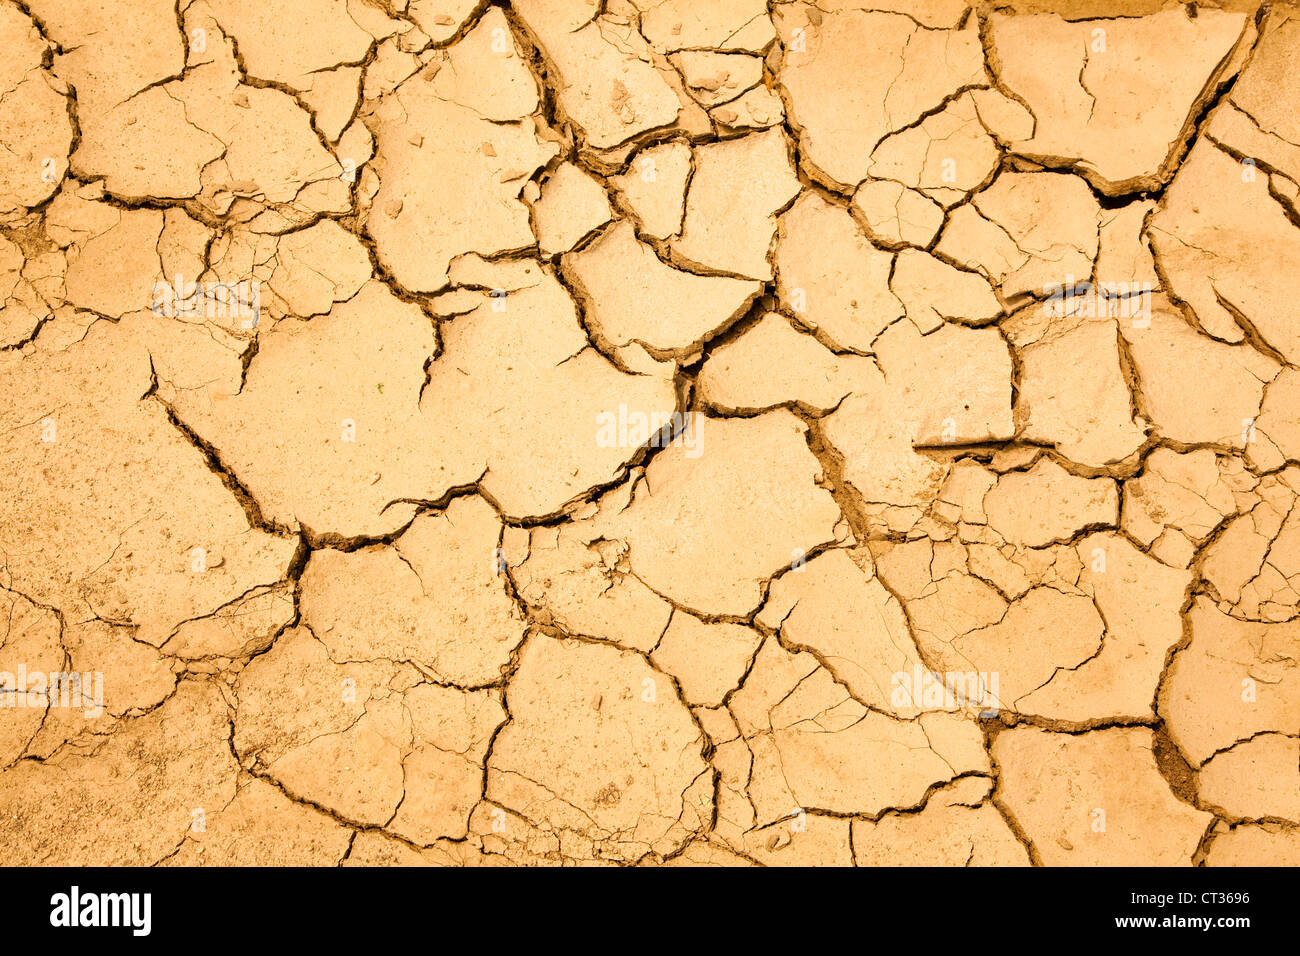 dry season with cracked ground - Stock Image